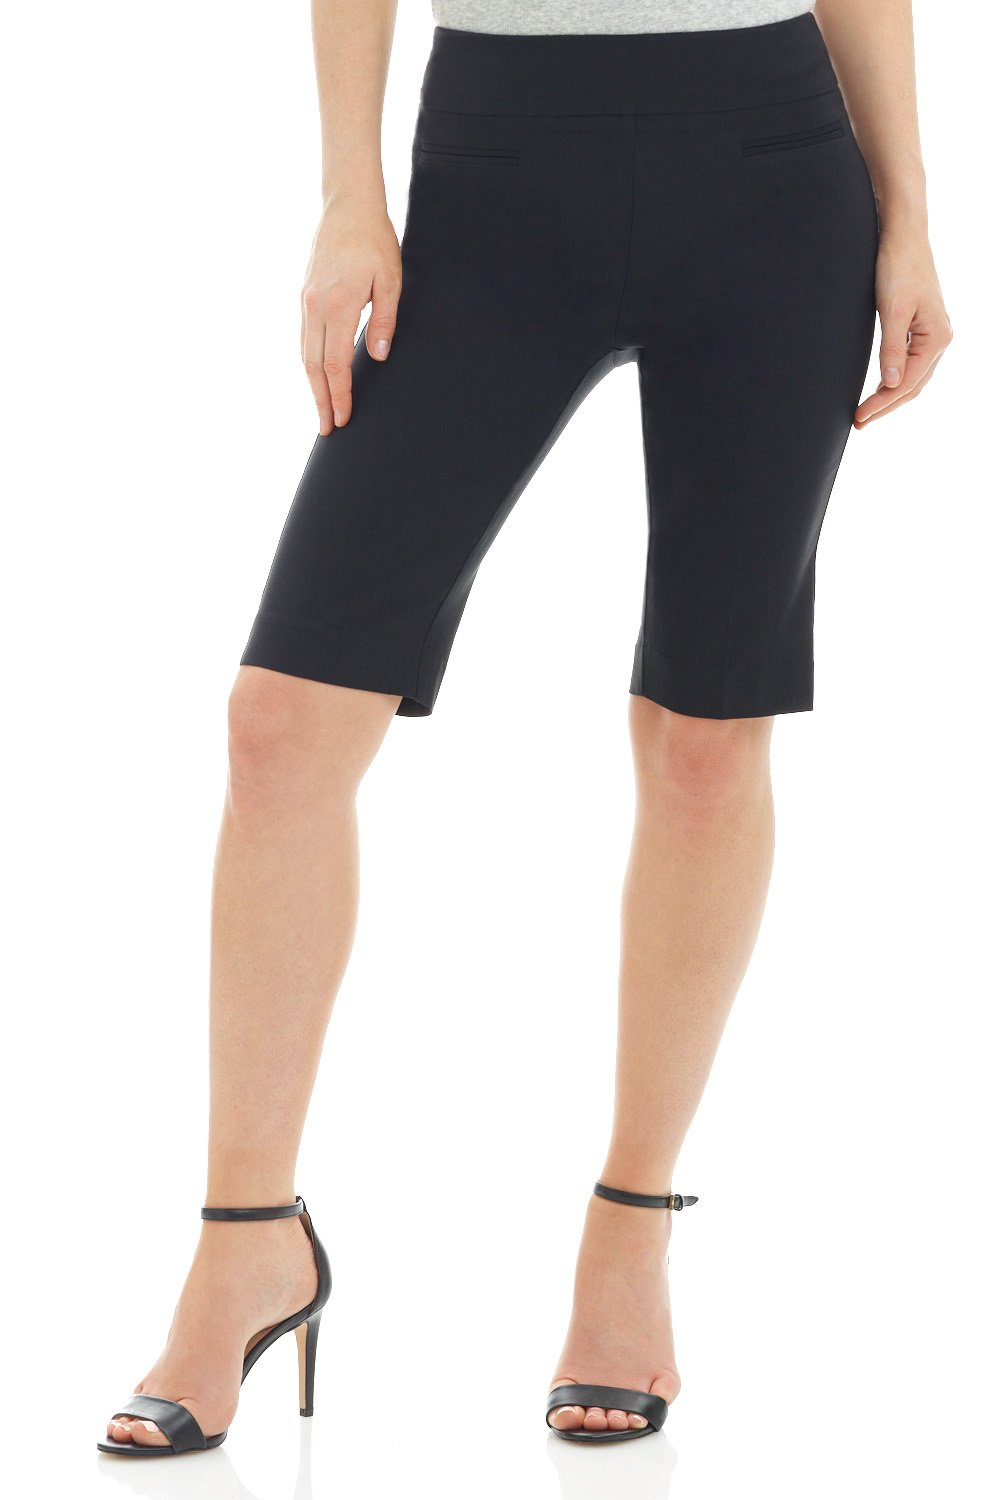 Rekucci Women's Ease In To Comfort Fit Pull-On Modern City Shorts (10,Black)